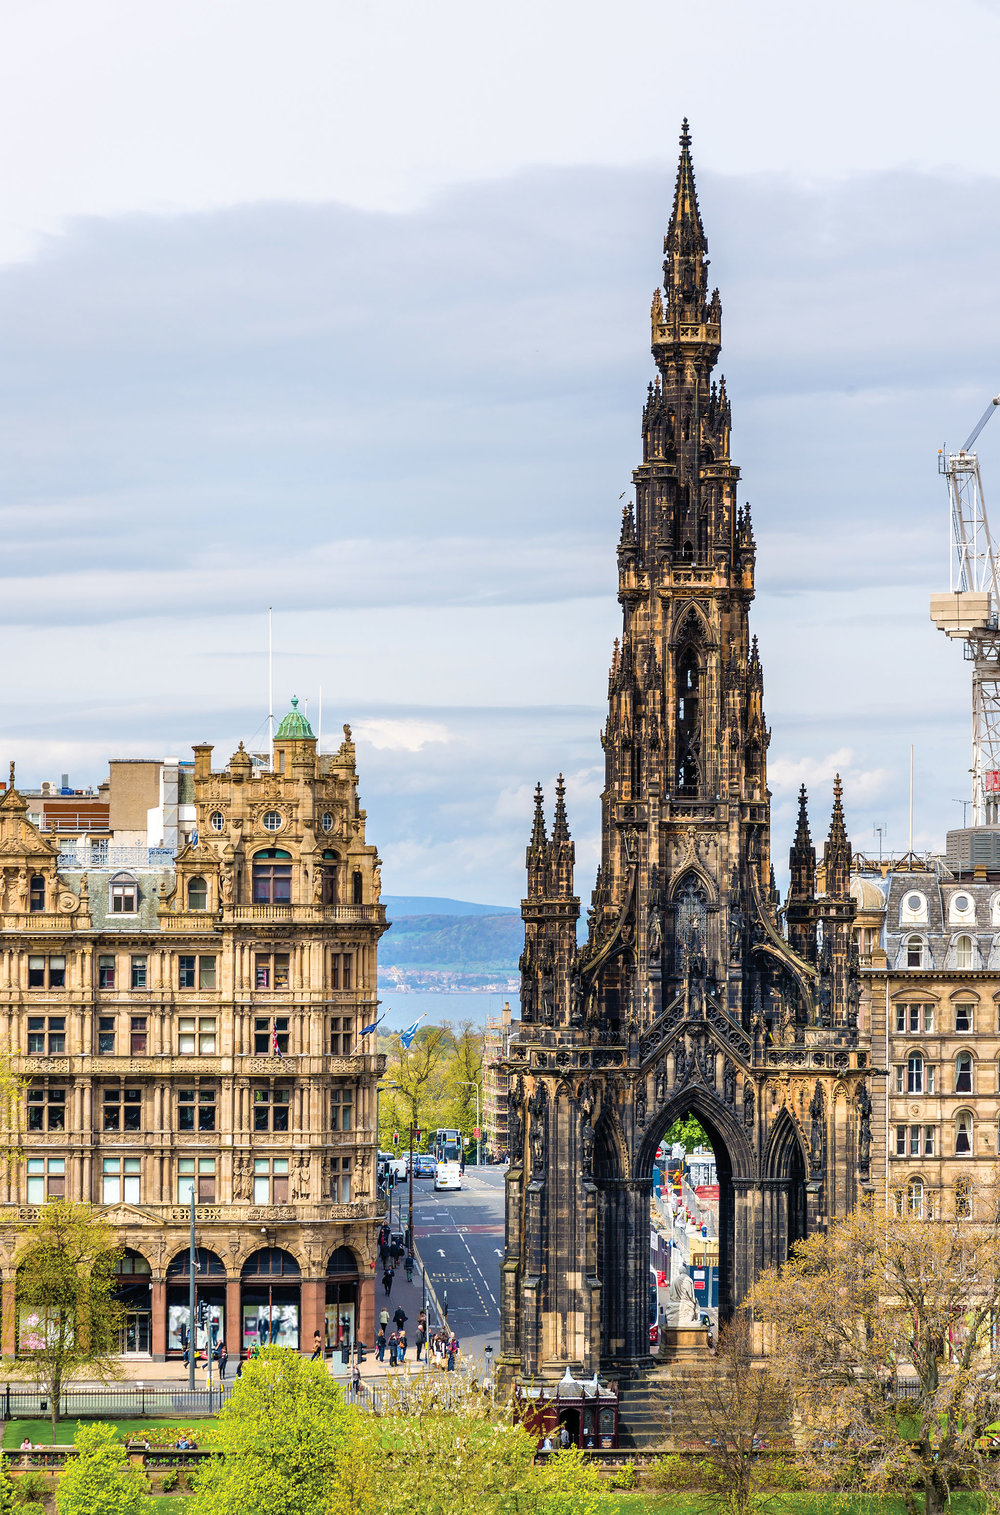 Towering over 200 feet high, the Scott Monument is the tallest monument erected to a writer in the world.